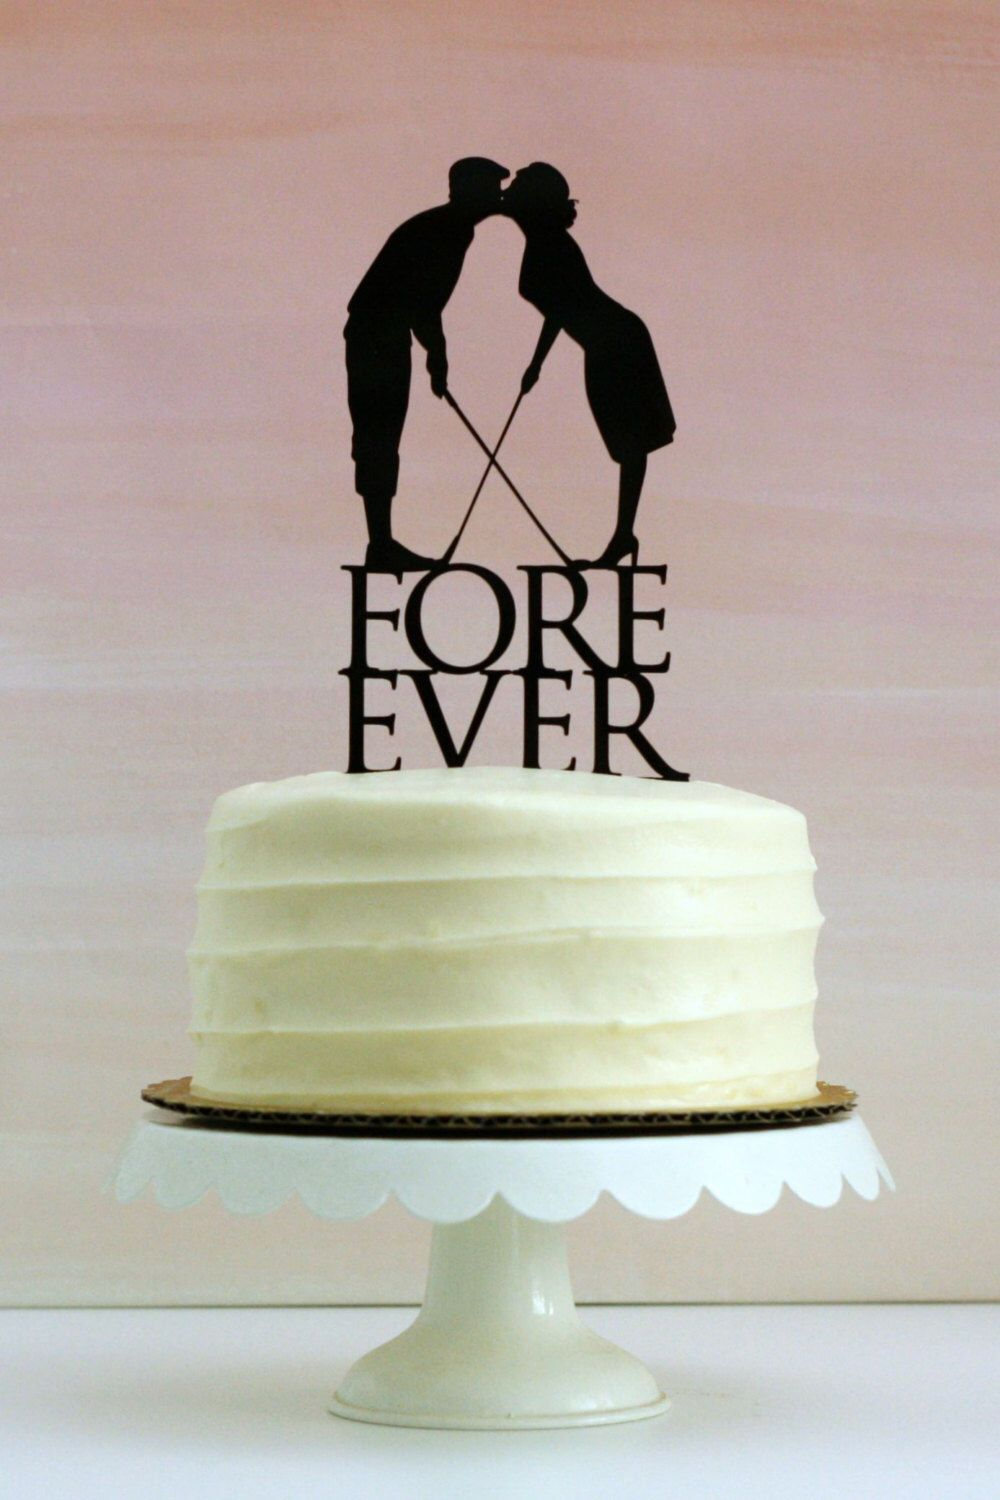 Fore Ever Golf Wedding Cake Topper with Silhouettes - MADE TO ORDER - Customizable by Silhouetteweddings on Etsy https://www.etsy.com/listing/247002855/fore-ever-golf-wedding-cake-topper-with